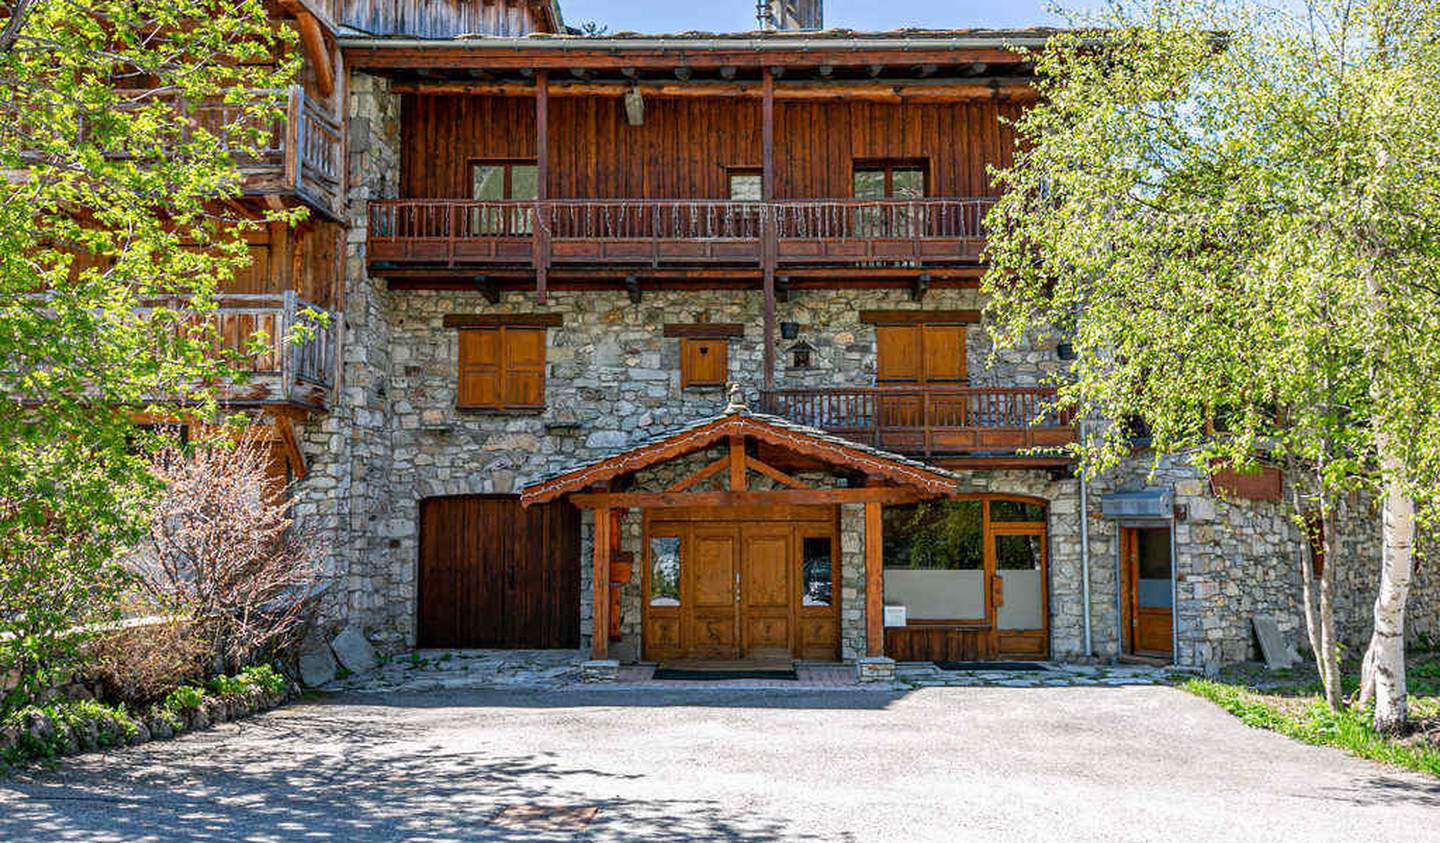 House Val-d'isere